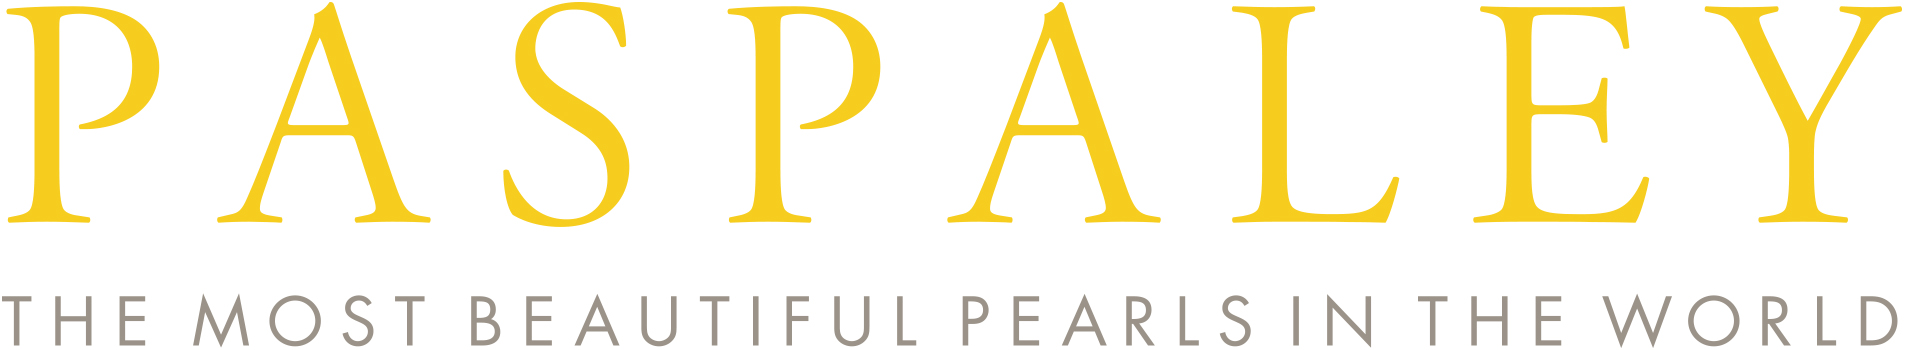 Paspaley Logo.jpg